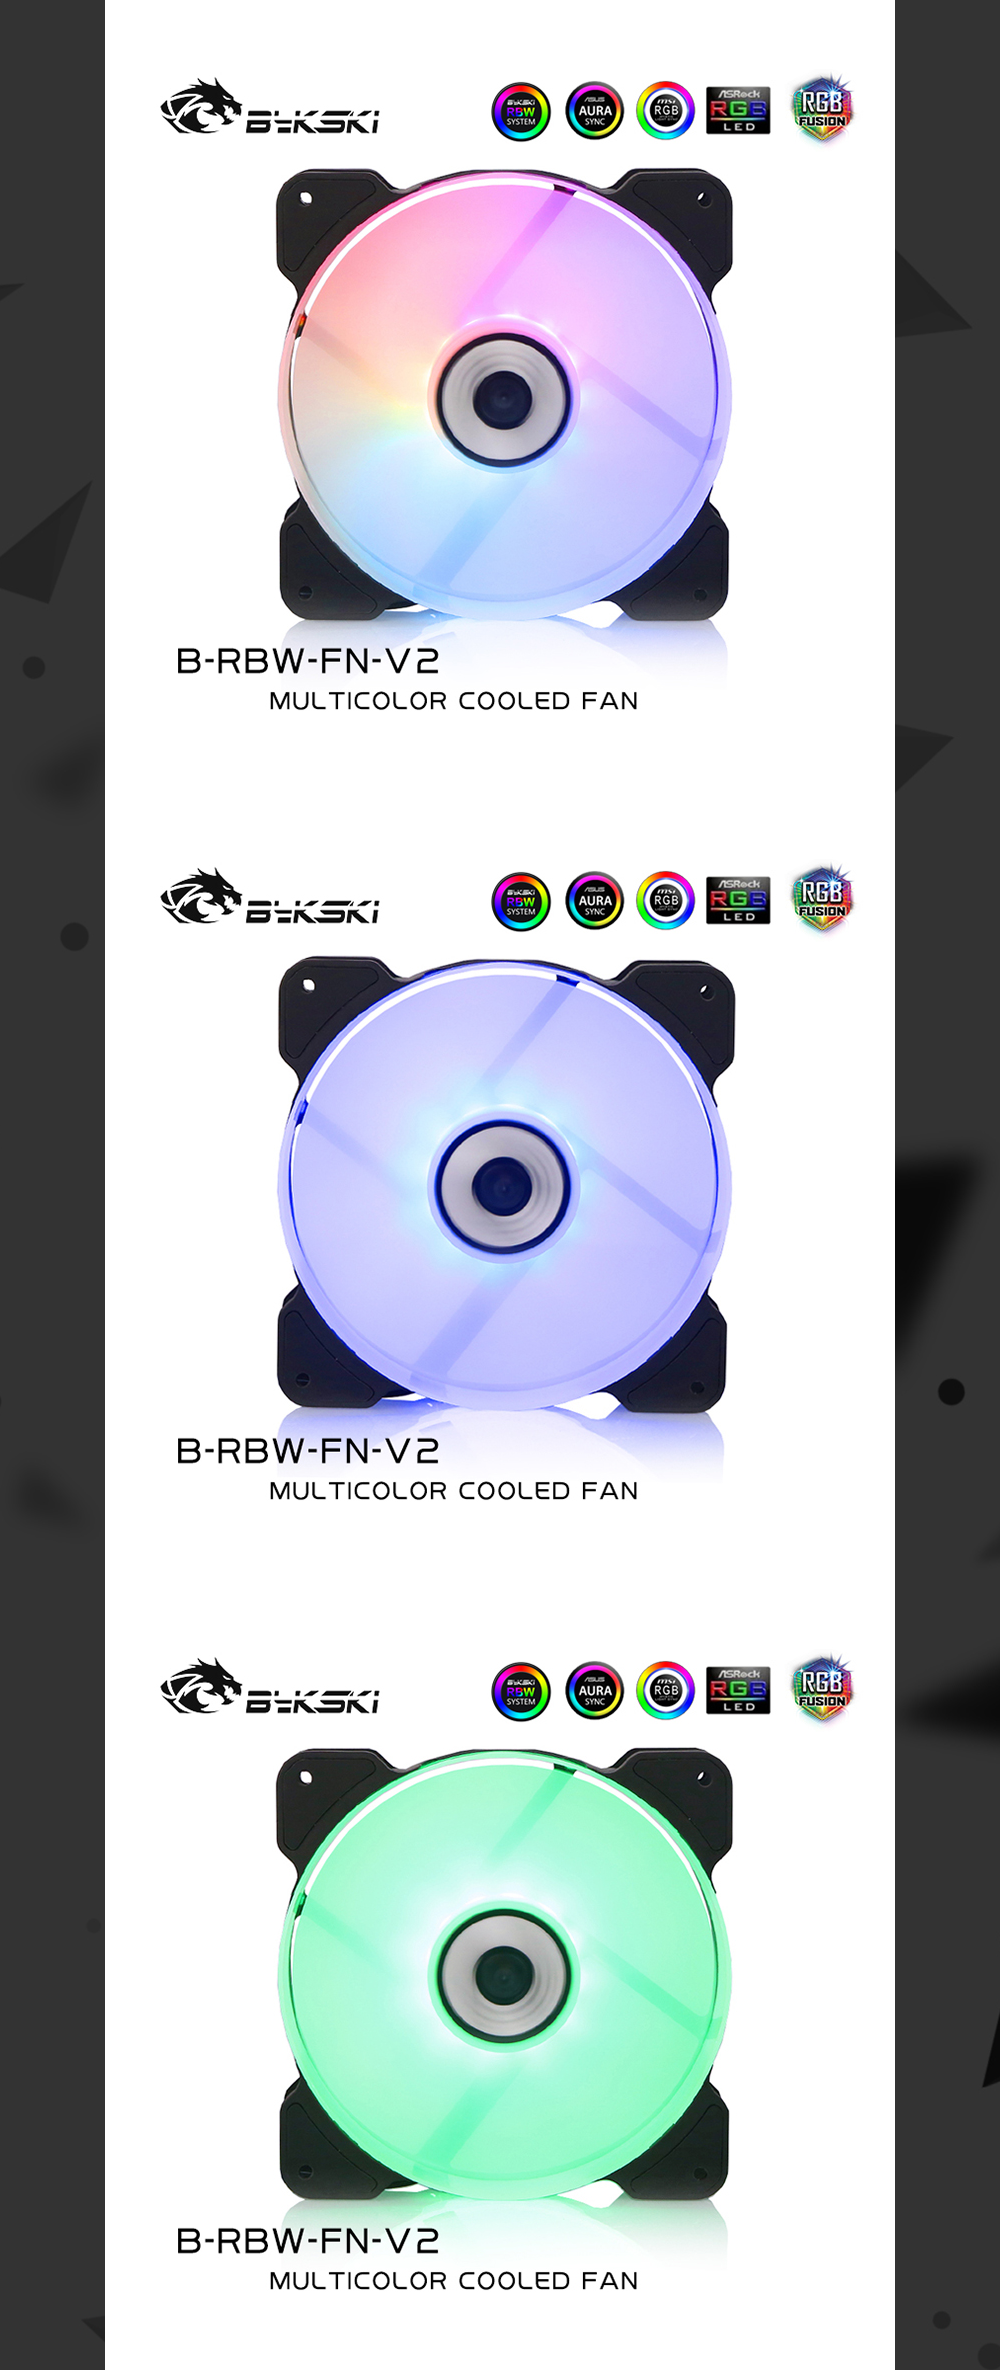 Bykski B-RBW-FN-V2 RBW 120mm Constant Cooling Fan / Cooler, Compatible With 120 / 240 / 360 / 480 mm Radiators